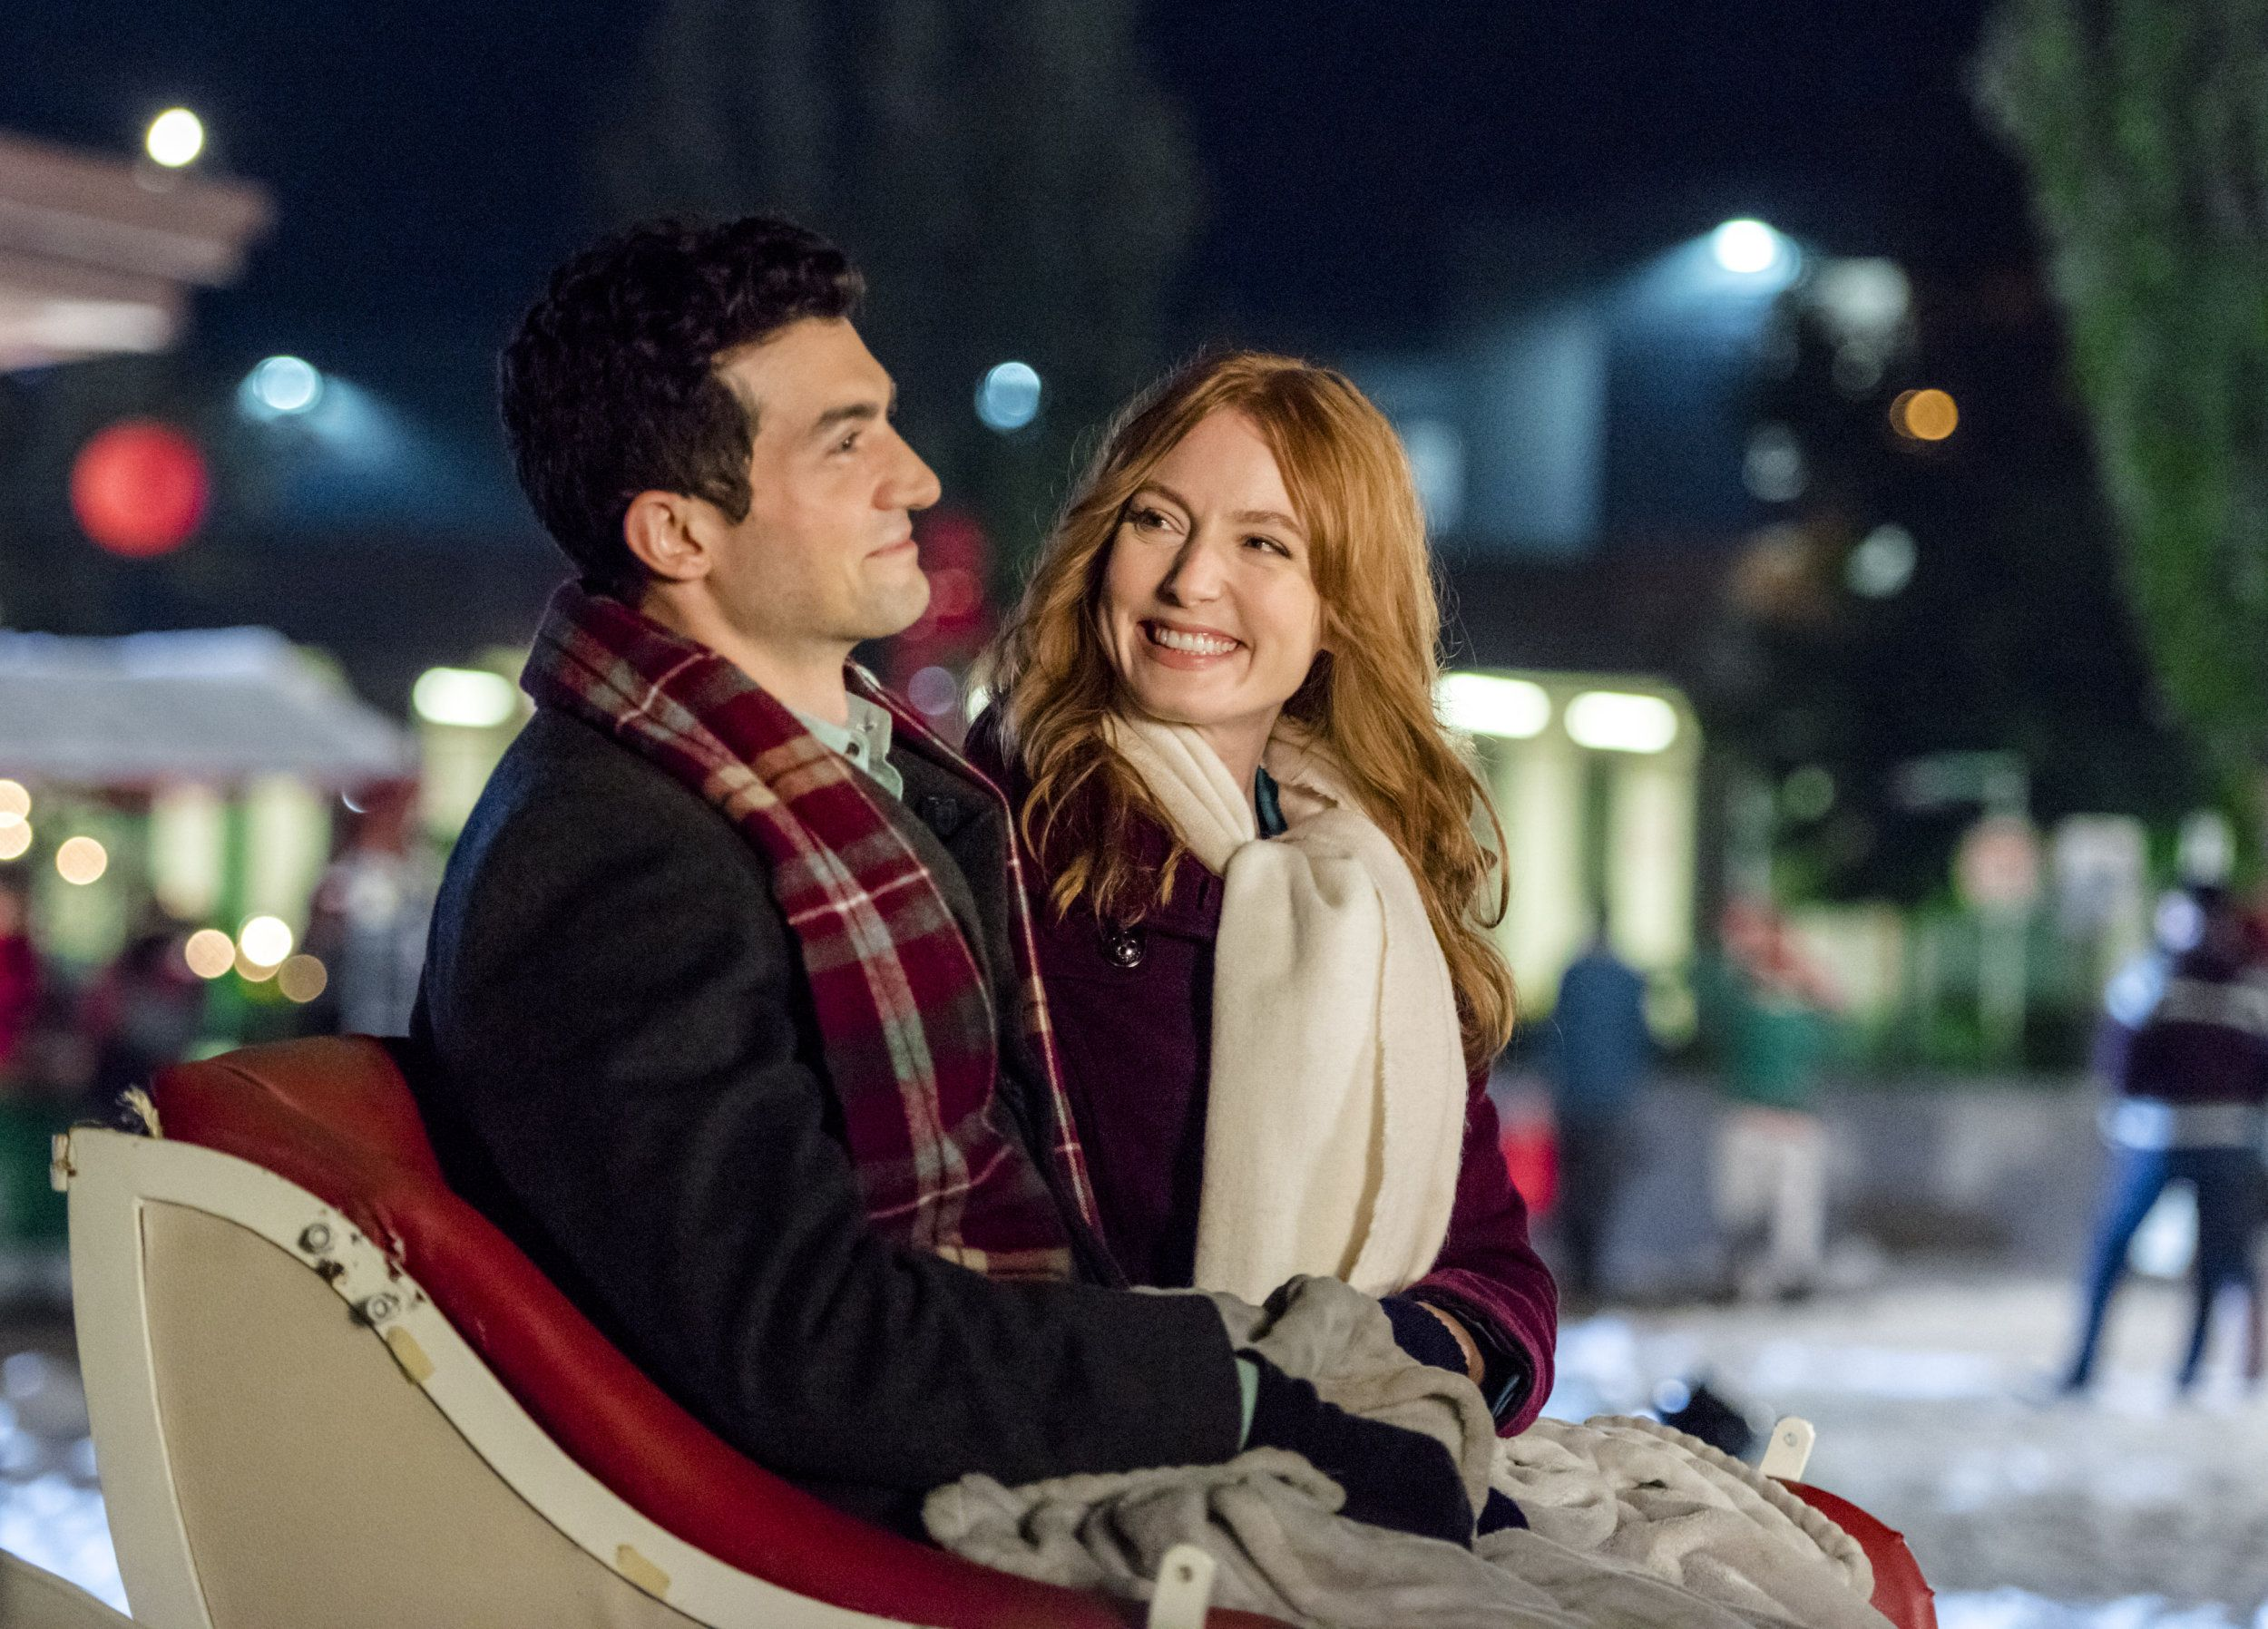 30 Fun Winter First Date Ideas That'll Make You Forget All About the Cold